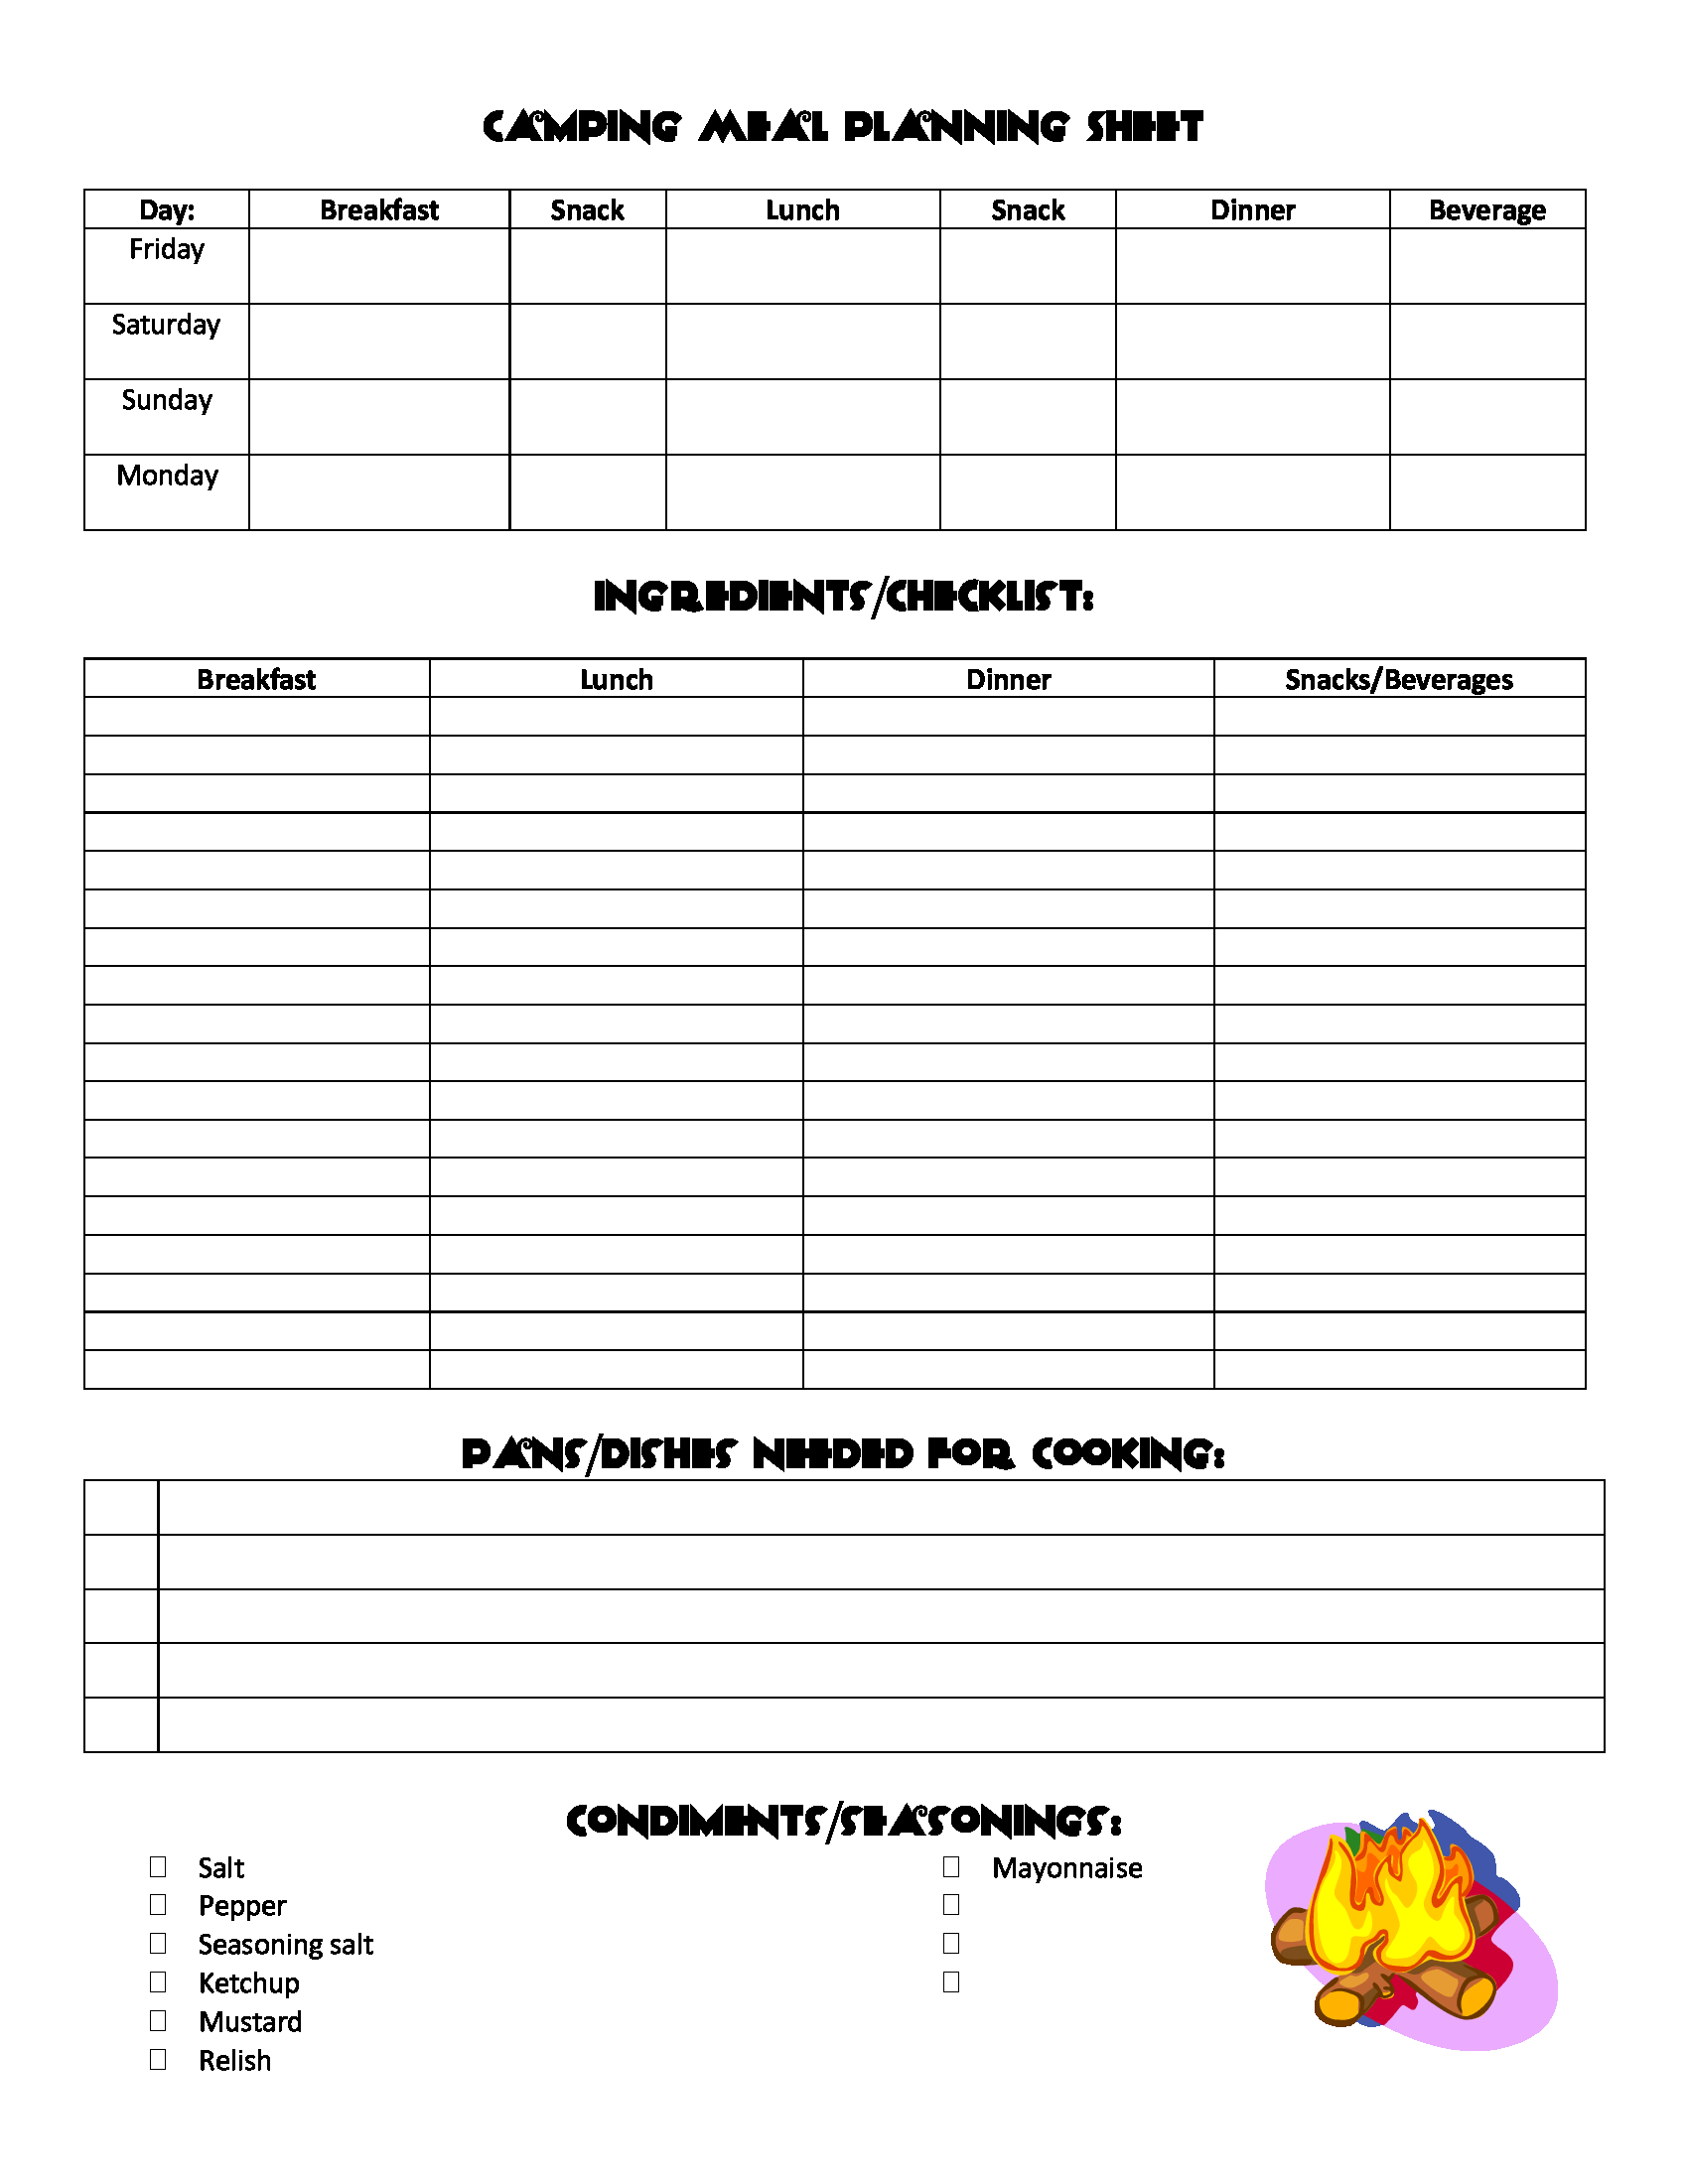 Worksheets Meal Planning Worksheet camping meal planning sheet ideas pinterest sheet